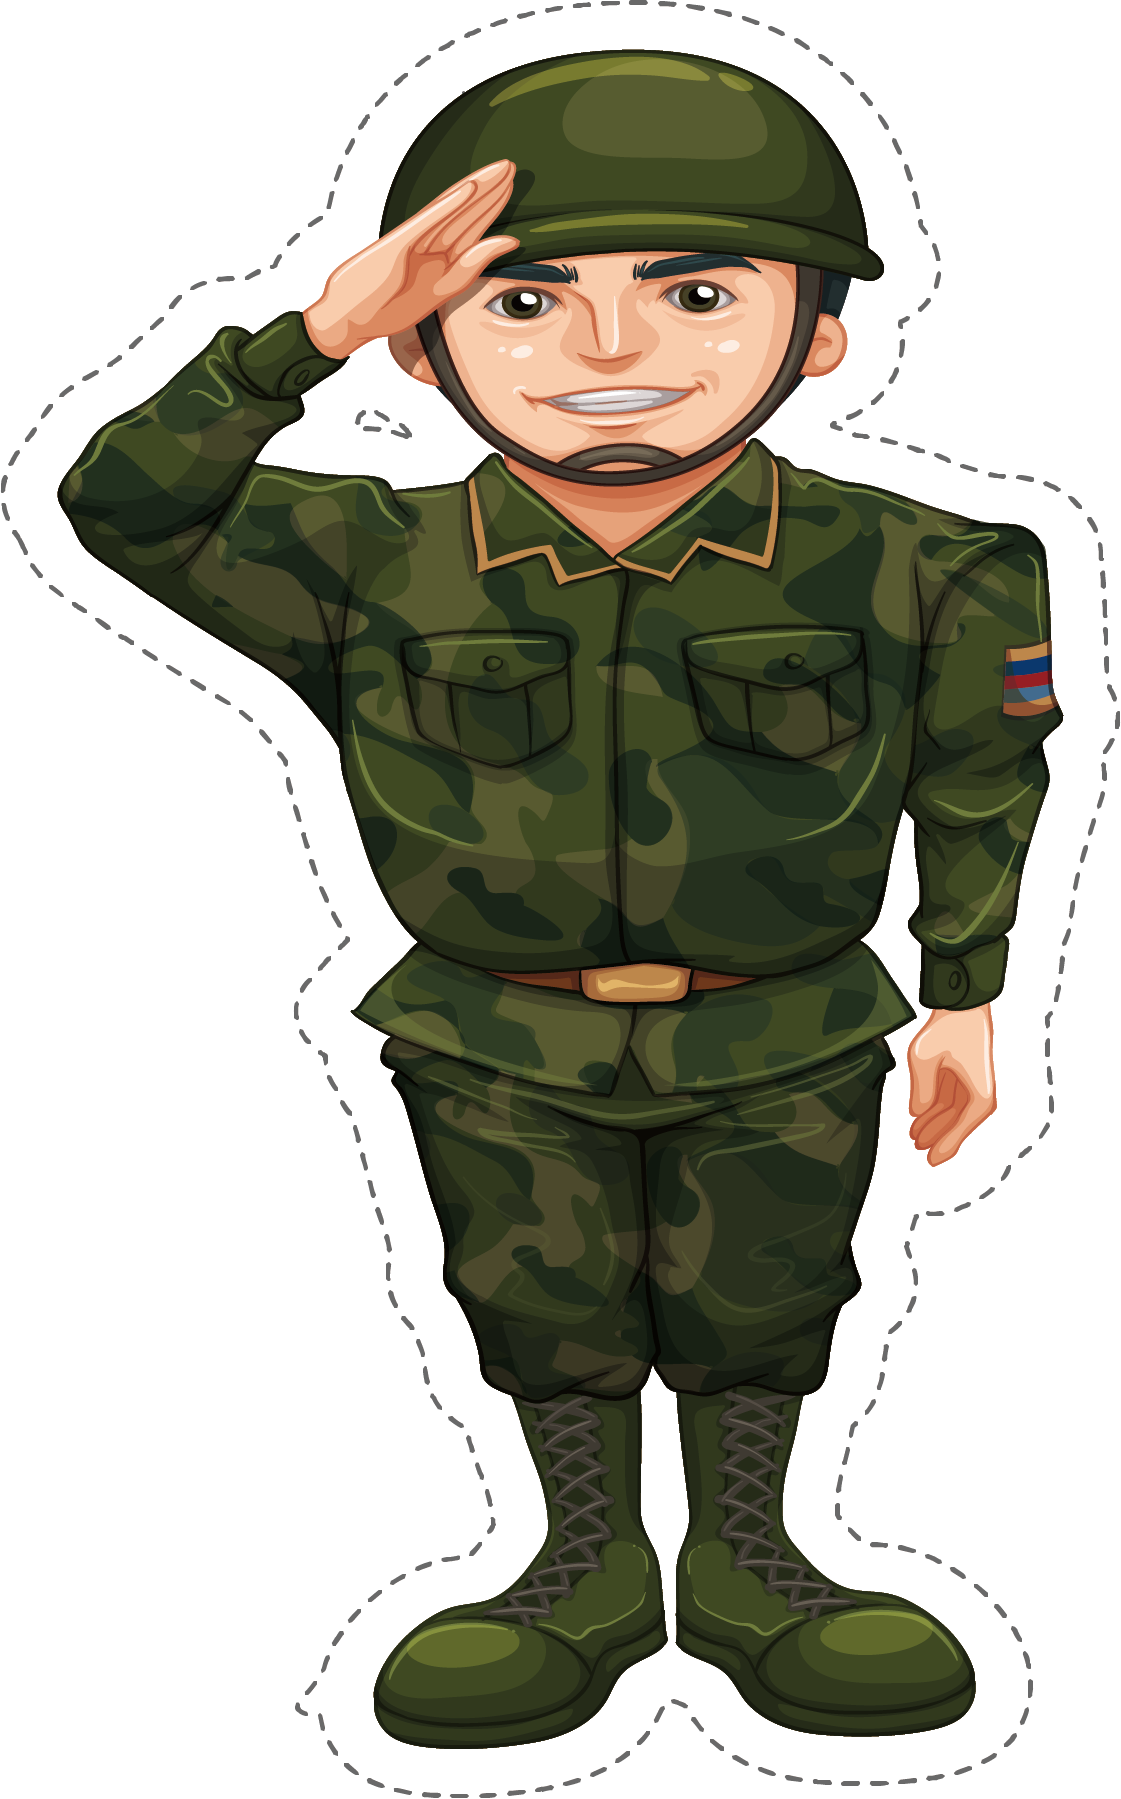 Soldiers clipart army officer. Soldier salute stock photography